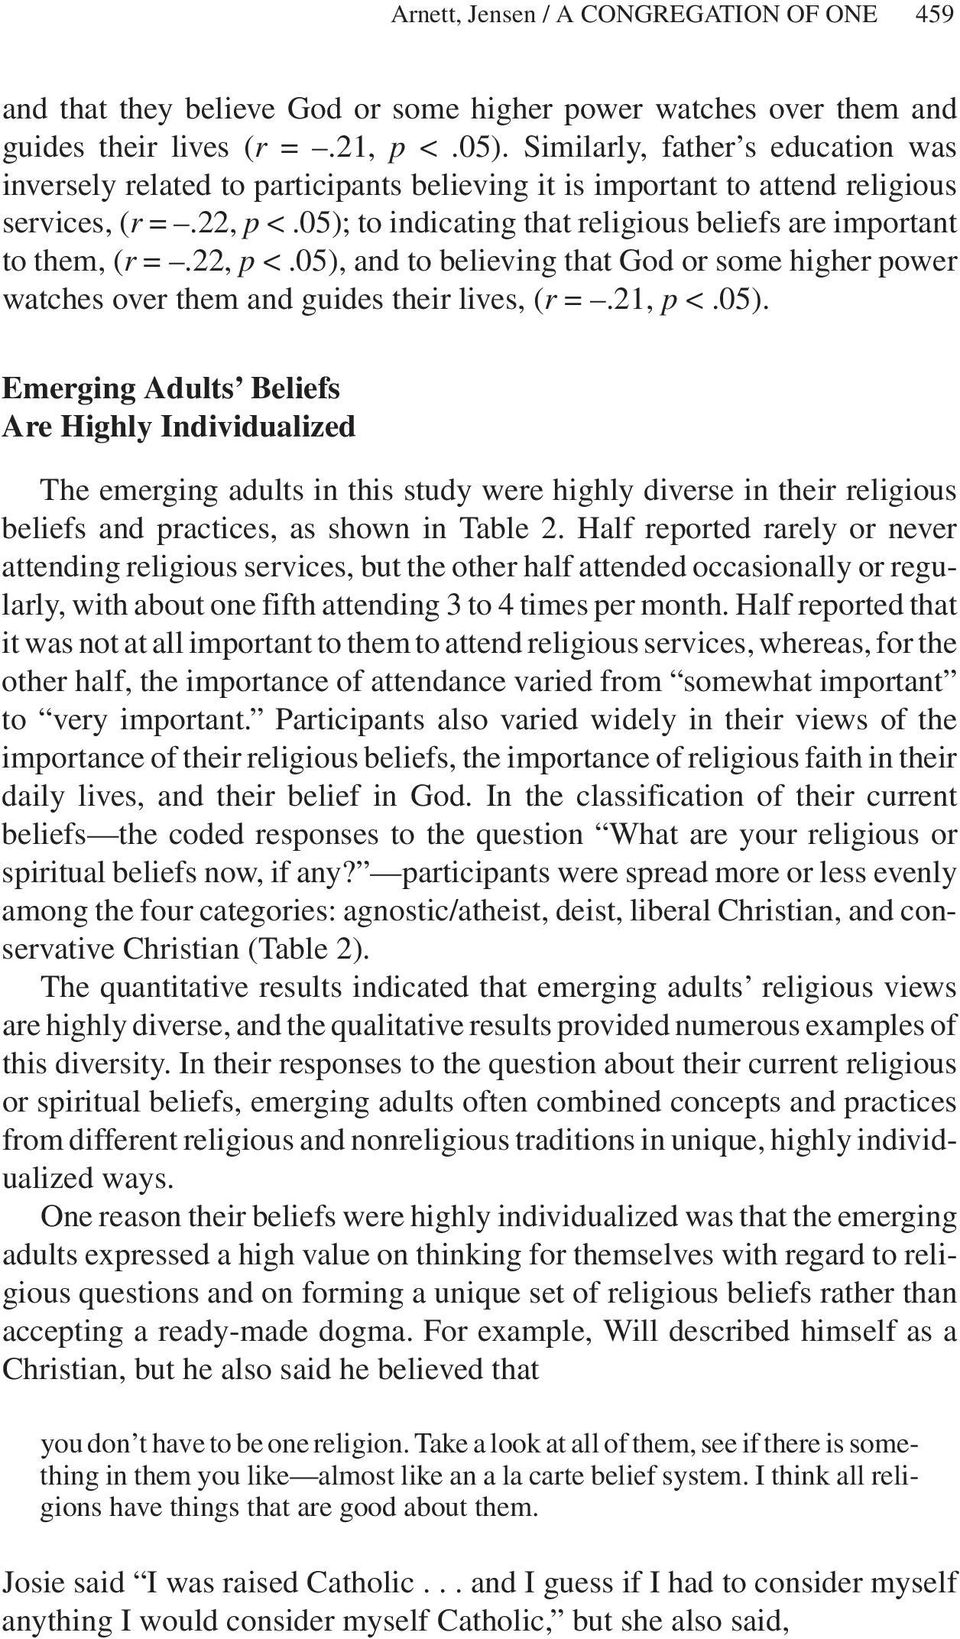 05); to indicatingthat religious beliefs are important to them, (r =.22, p <.05), and to believingthat God or some higher power watches over them and guides their lives, (r =.21, p <.05). Emerging Adults Beliefs Are Highly Individualized The emerging adults in this study were highly diverse in their religious beliefs and practices, as shown in Table 2.